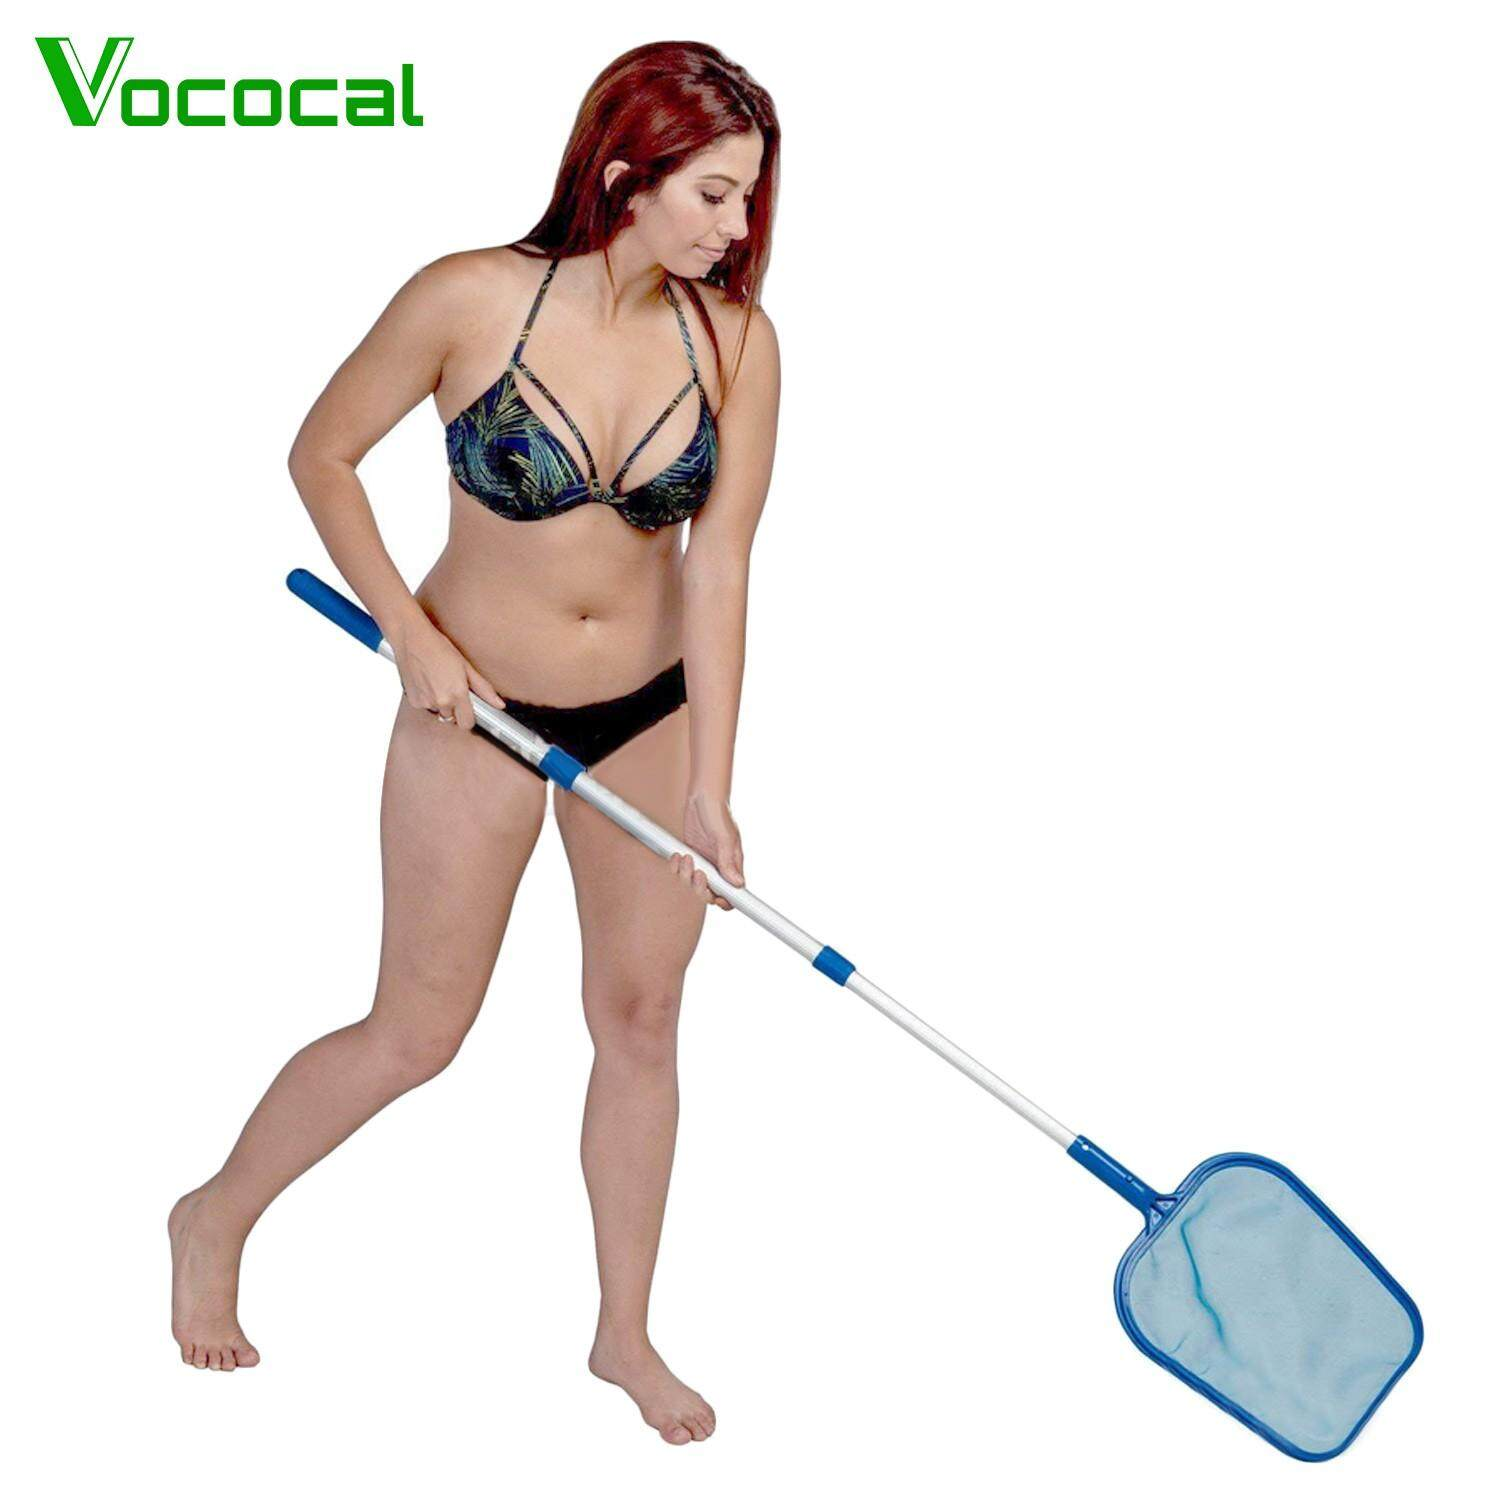 【In stock】Vococal Pool Leaves Skimmer Mesh Net with Adjustable Aluminum Telescopic Pole for Swimming Pool Maintenance Cleaner Supplies